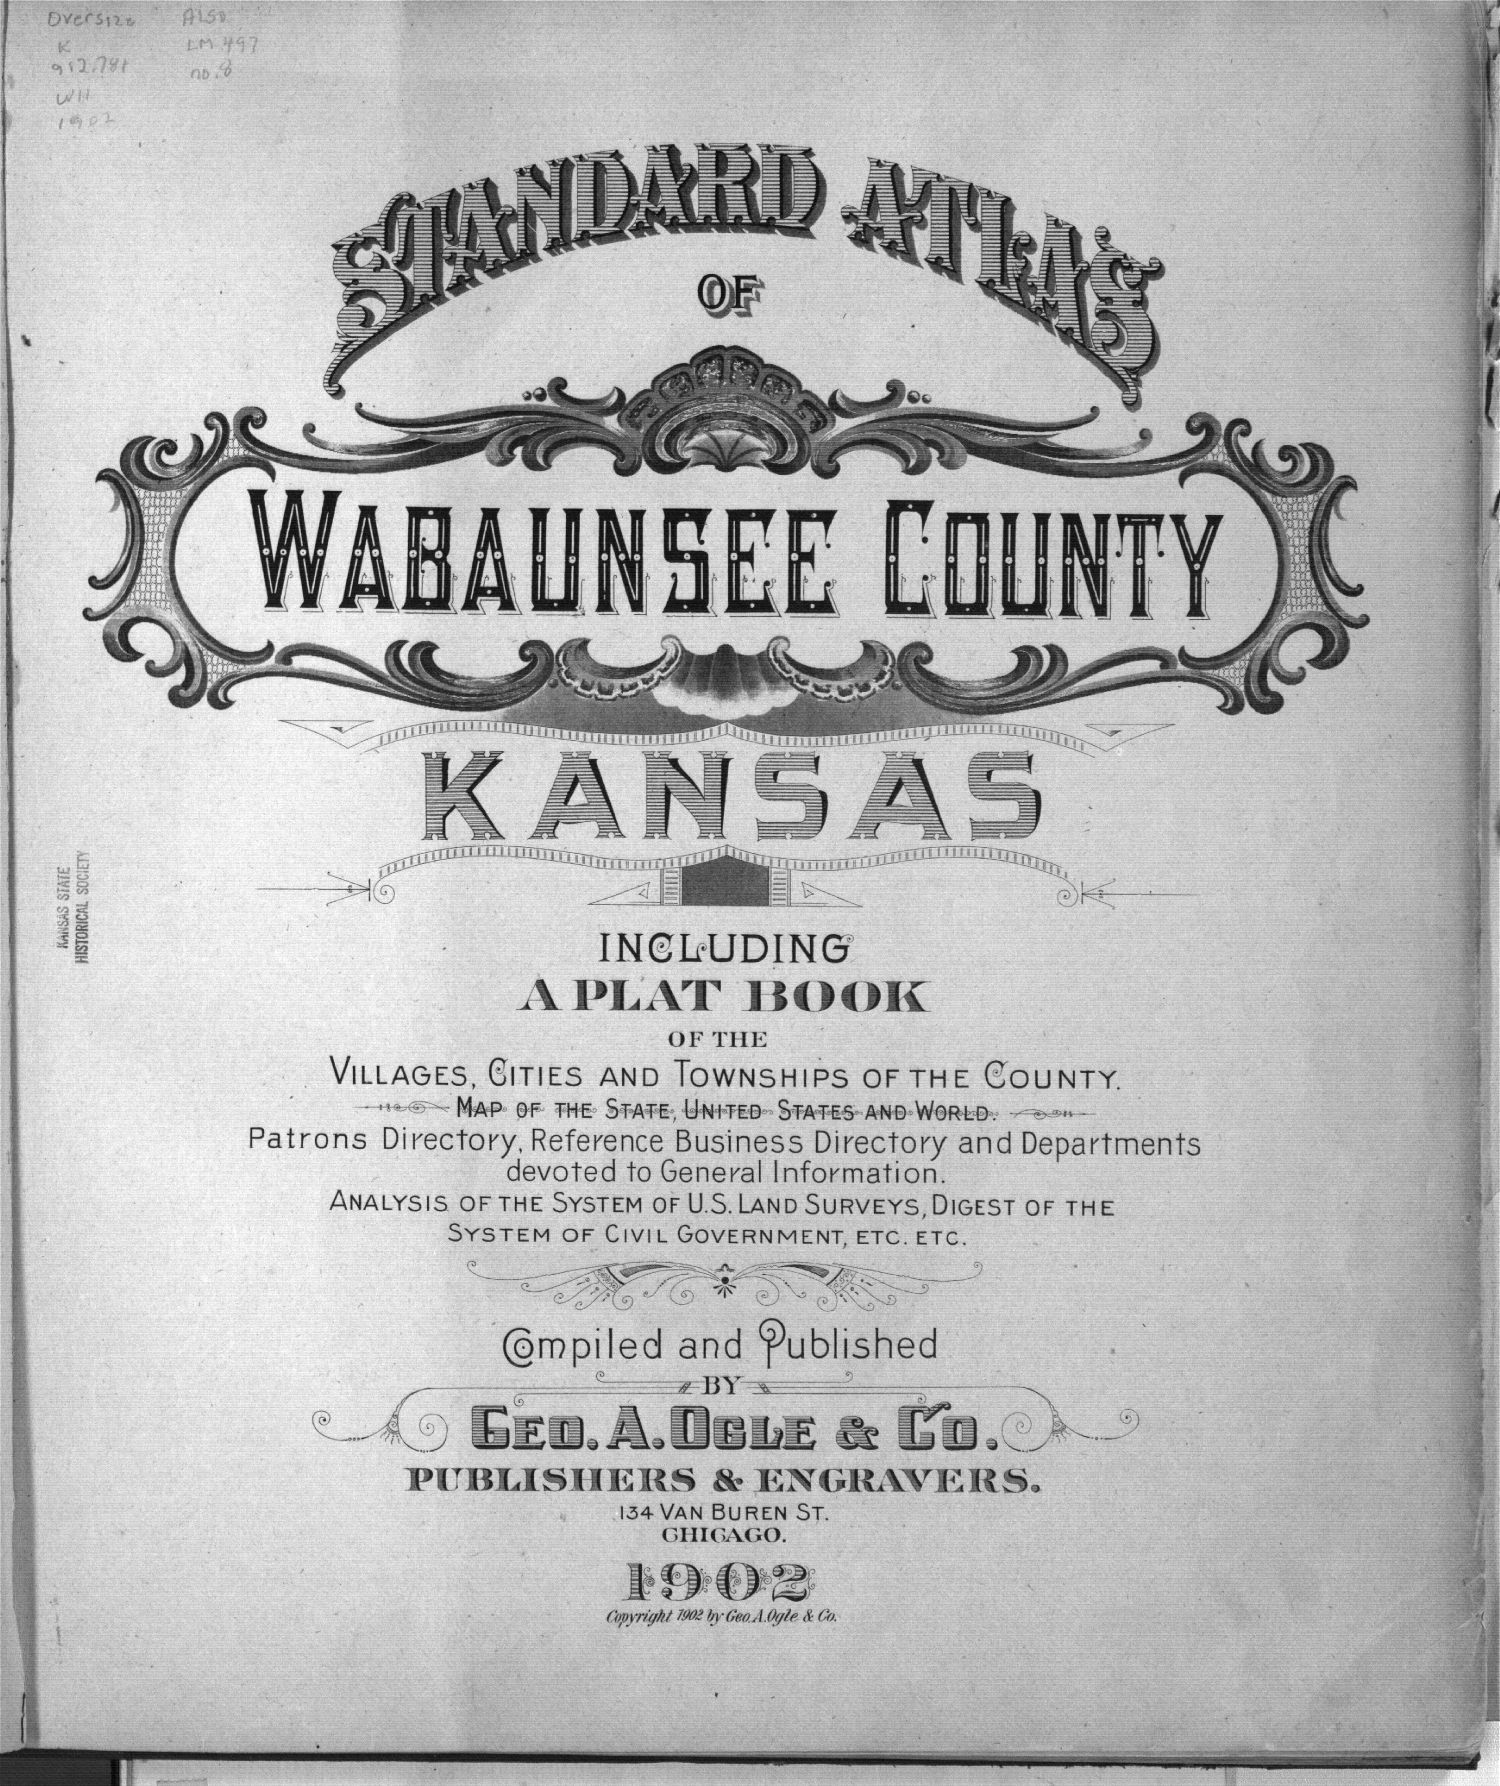 Standard atlas of Wabaunsee County, Kansas - Title Page